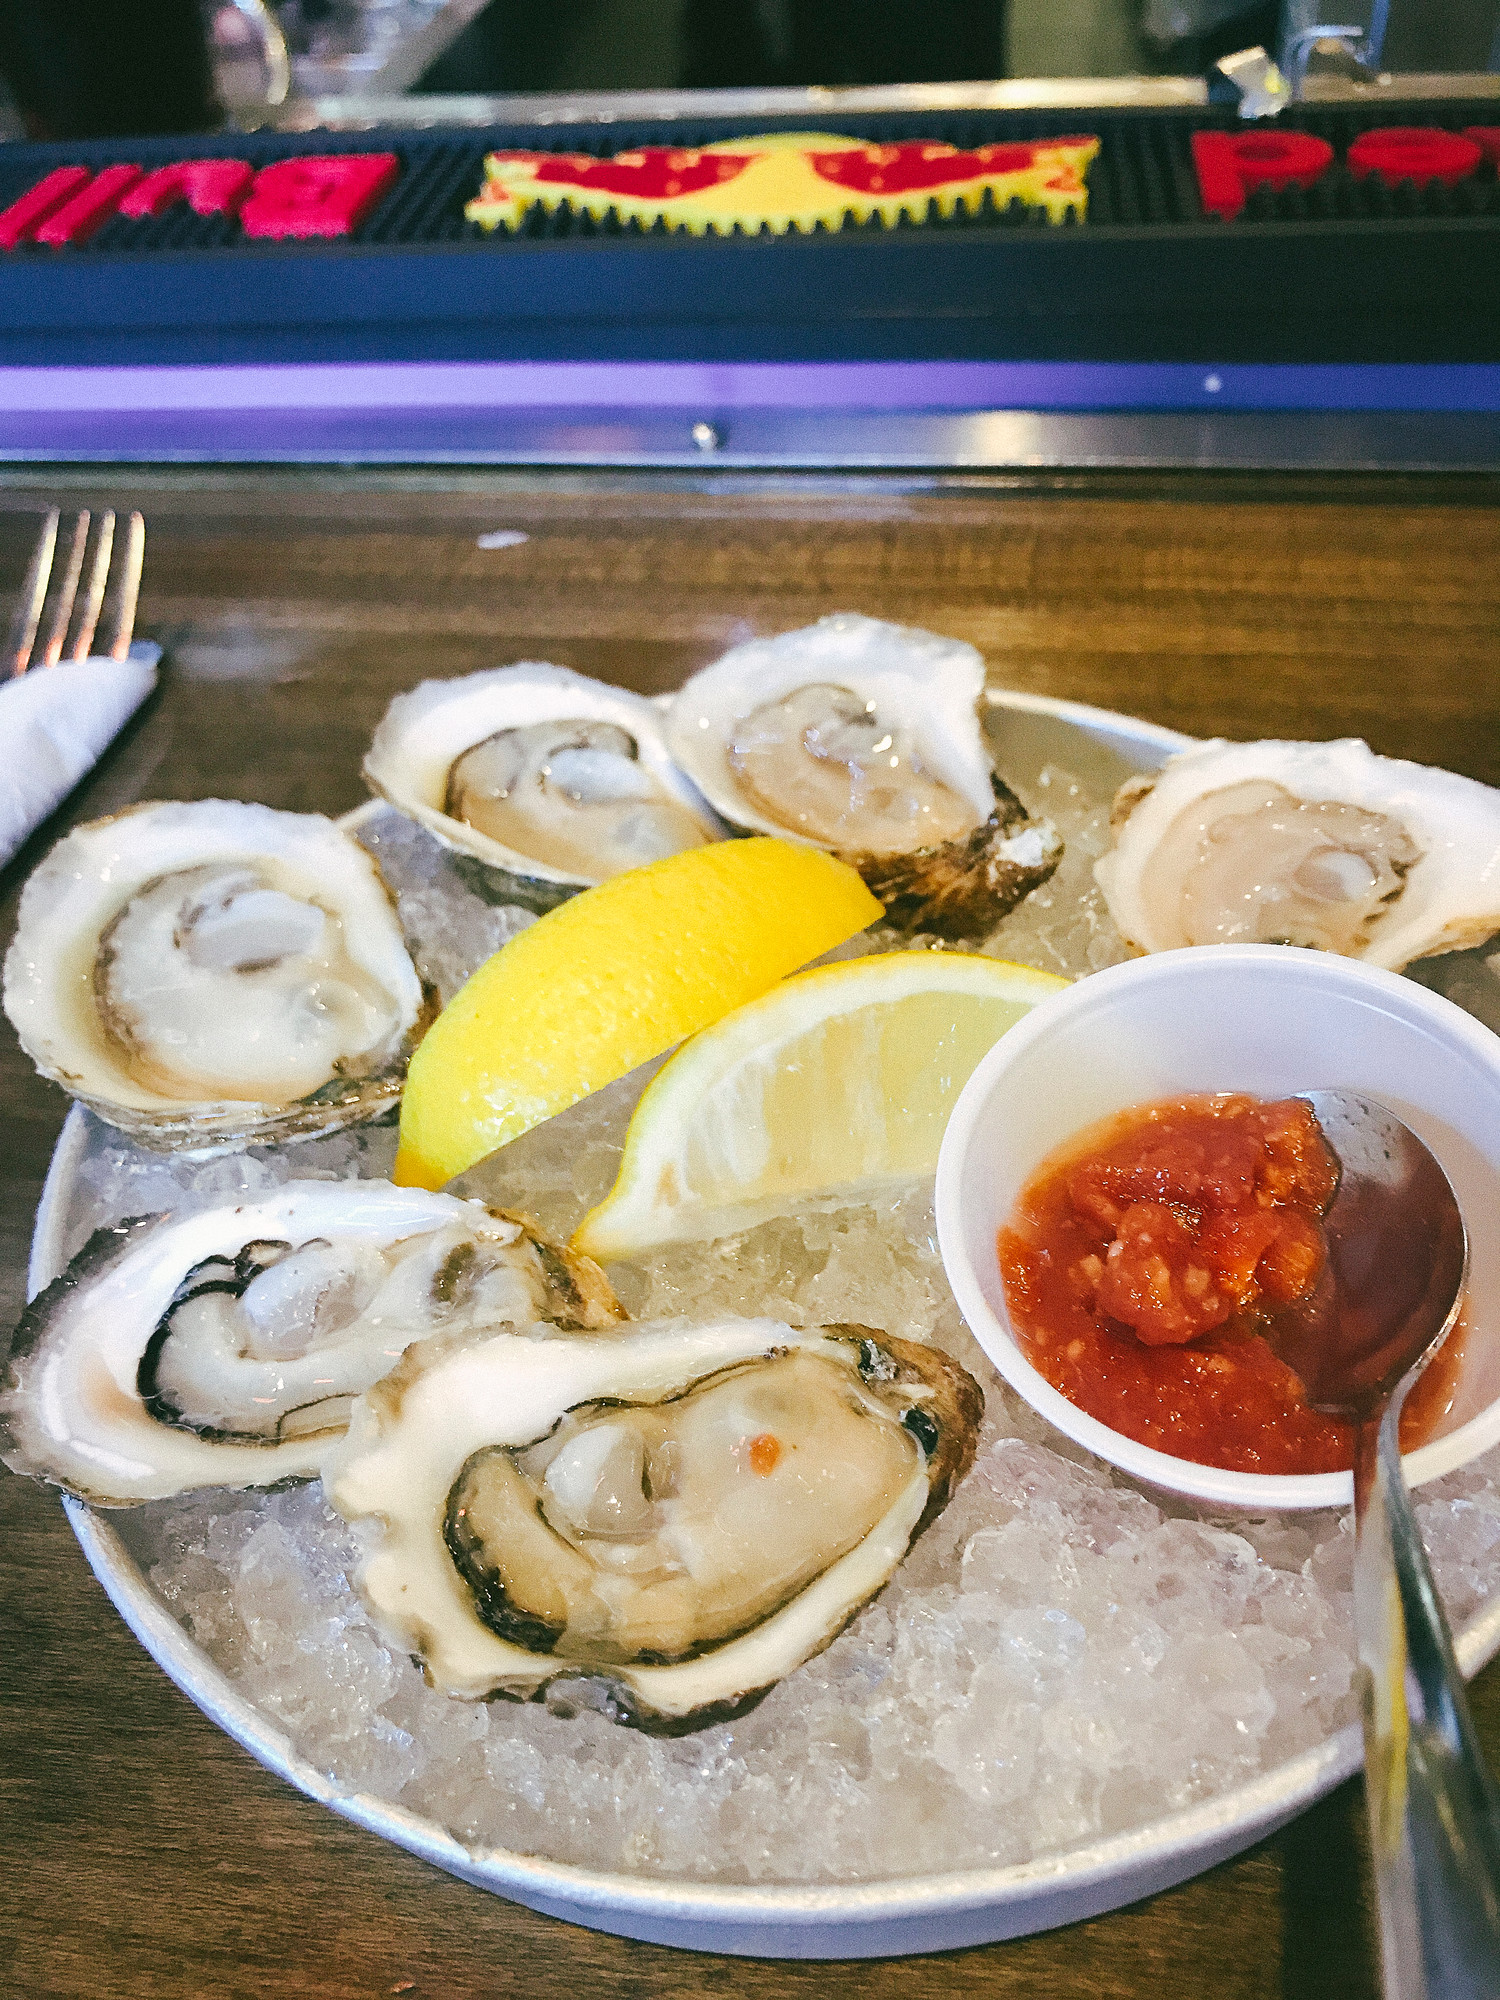 Where to Eat in PEI: Olde Dublin Pub has buck a shuck oysters from 4-6pm.